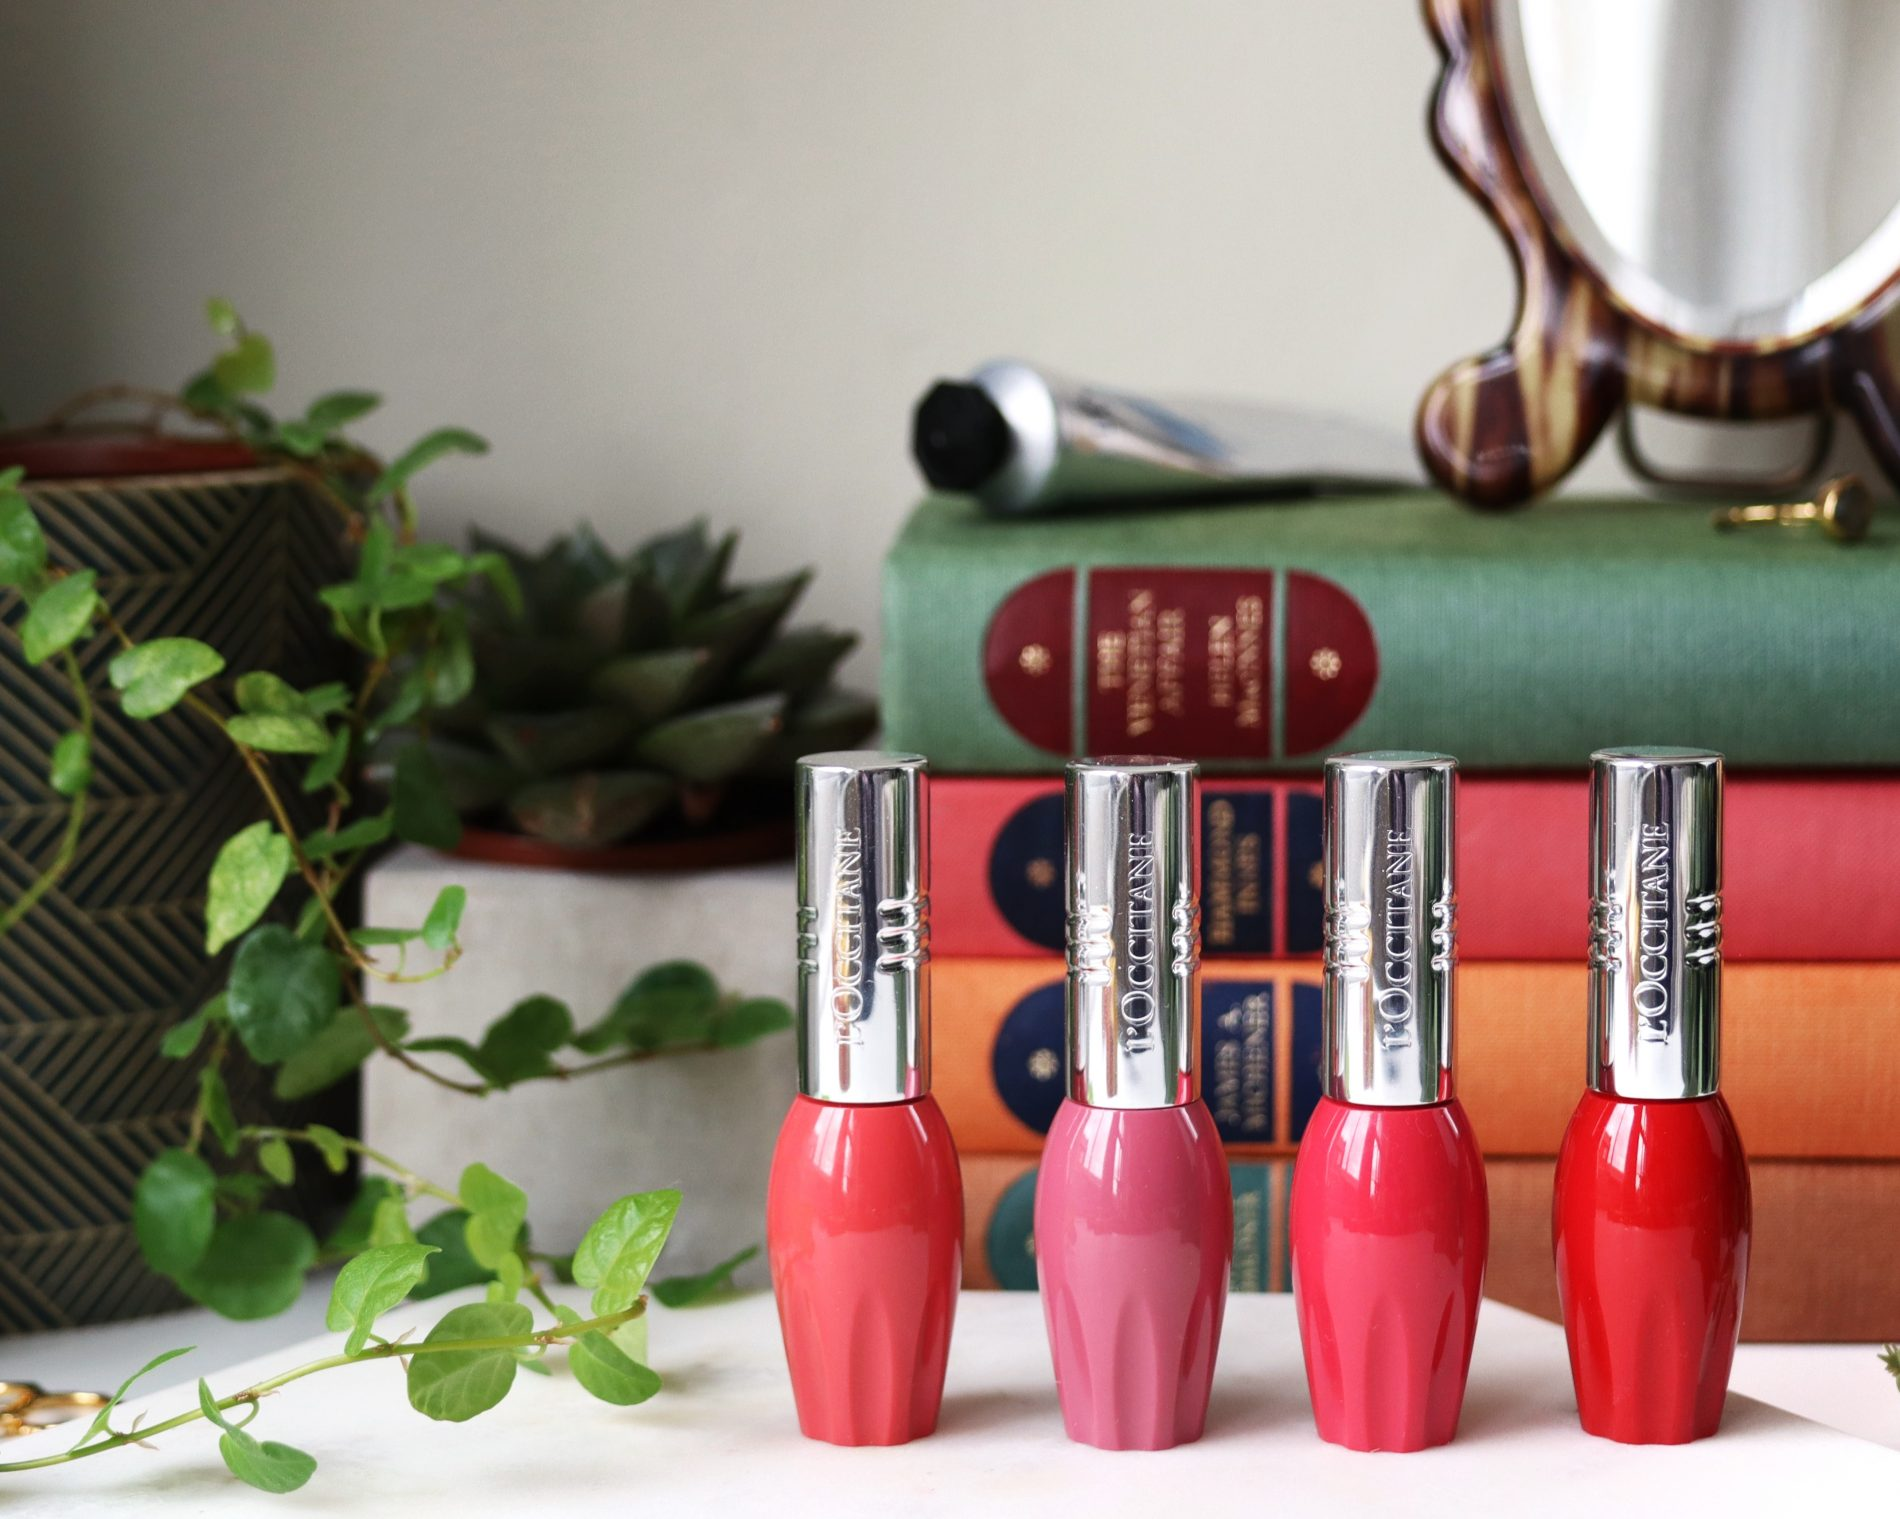 L'occitane Pressed Fruity Lipsticks review and swatches. The four lipsticks are in oval tubes, they are pinks and reds and stand on a marble top.